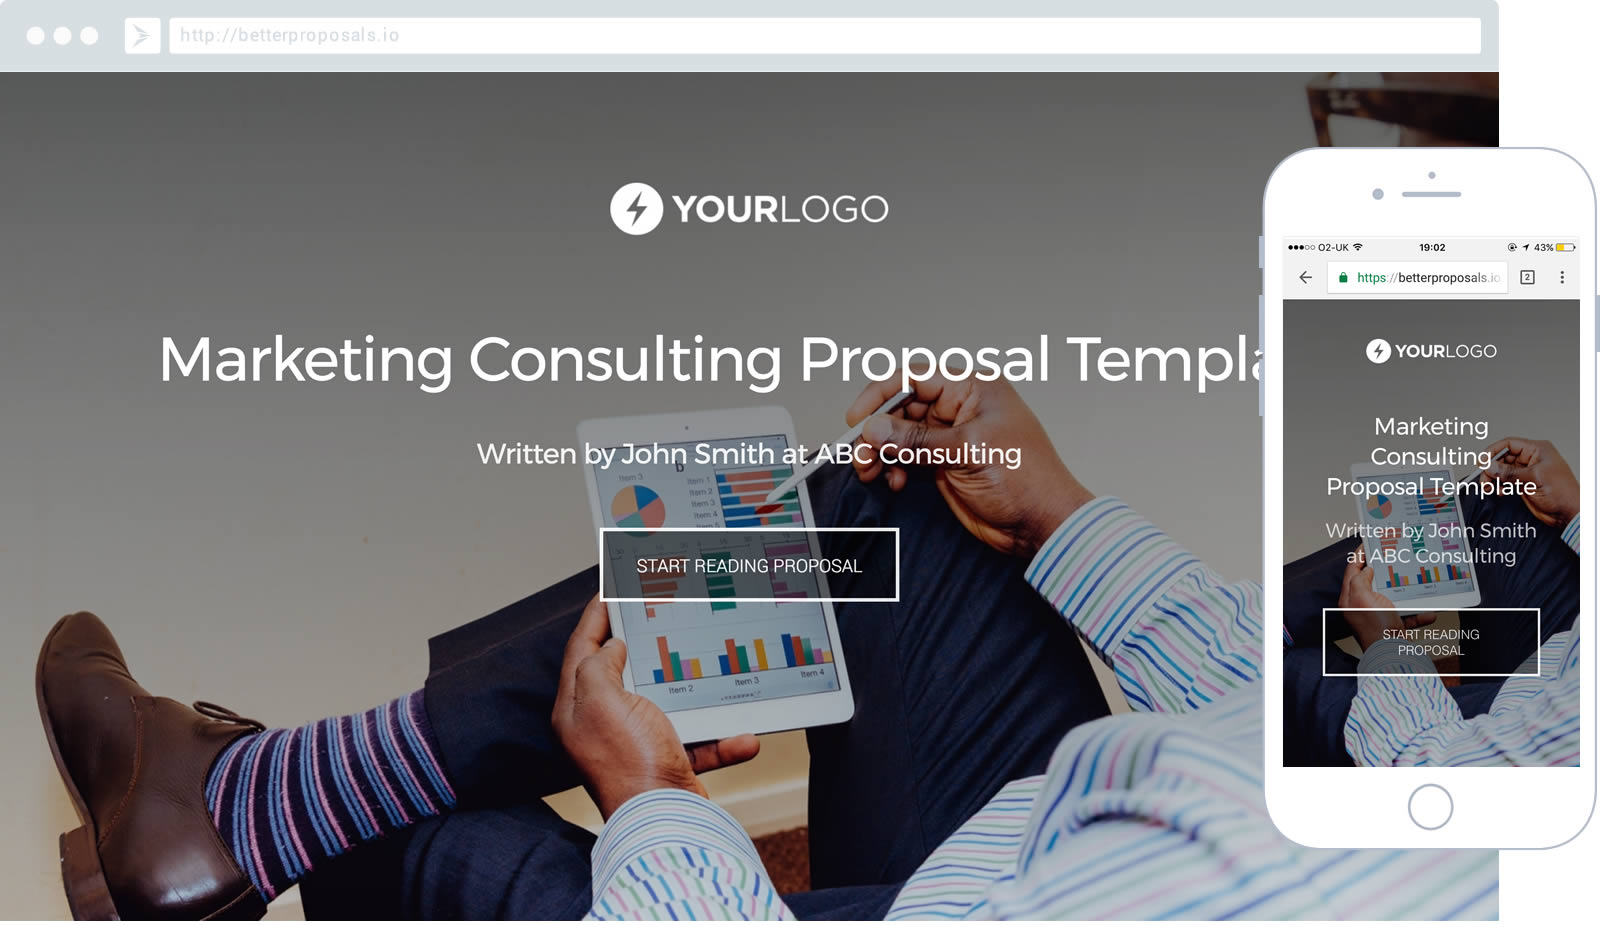 marketing consulting proposal template proposal template for any consultant helping to improve the marketing of a businesses